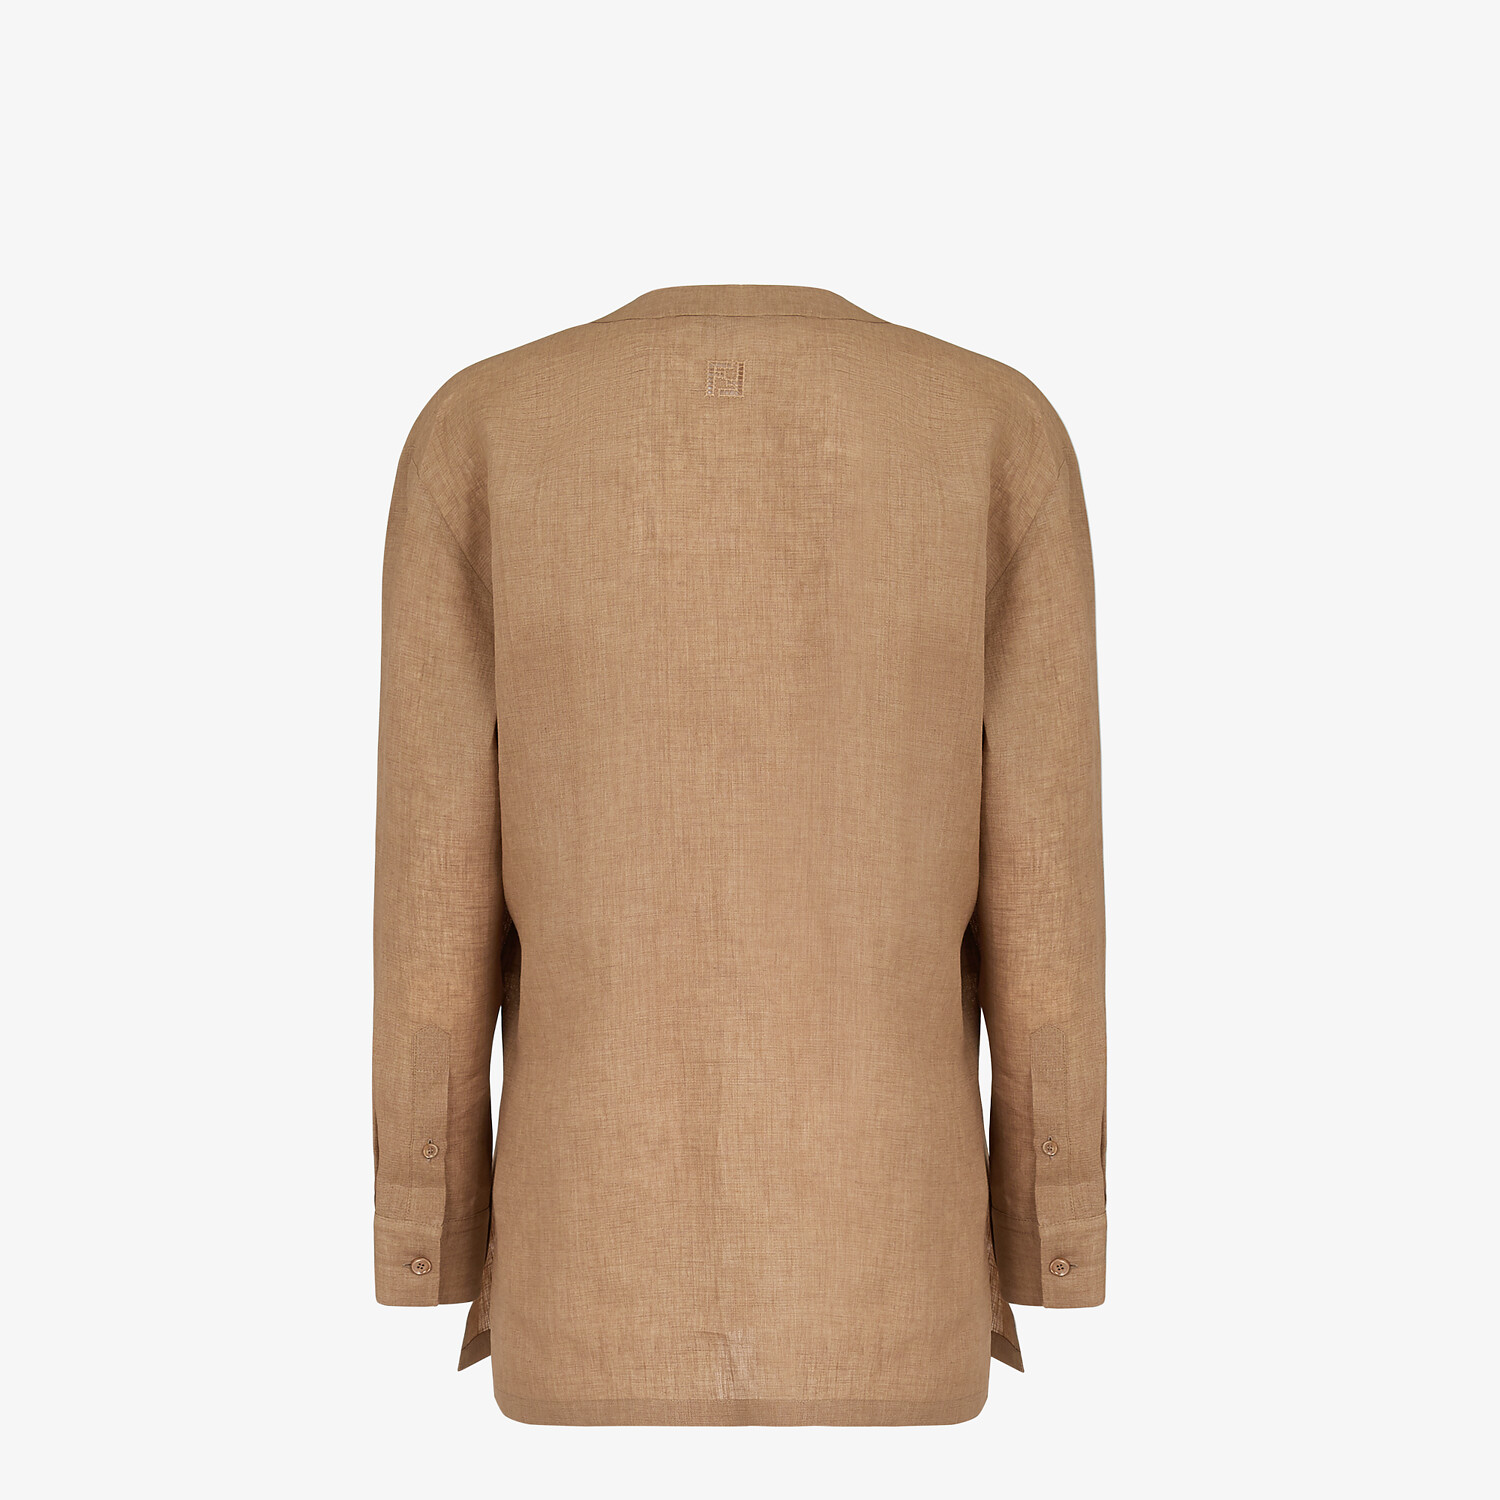 FENDI SHIRT - Beige linen shirt - view 2 detail